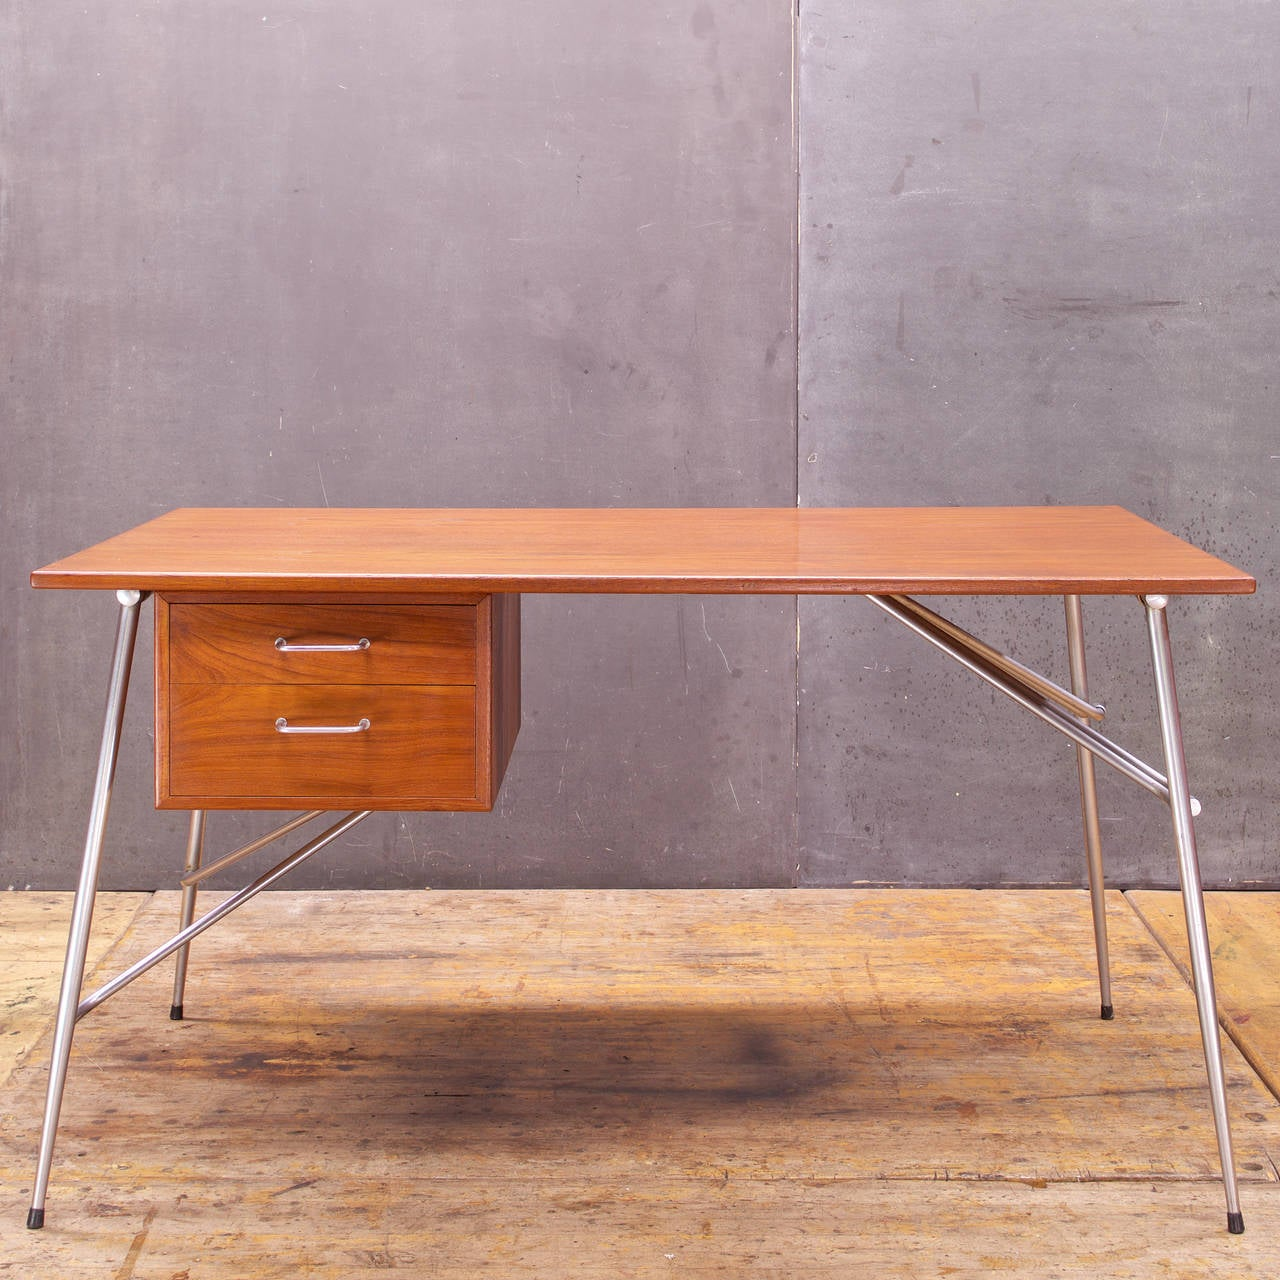 Rare and Iconic Danish Modern design by Borge Mogensen for Soborg Mobelfabrik of Denmark.  Beautiful Condition, Original Finish.